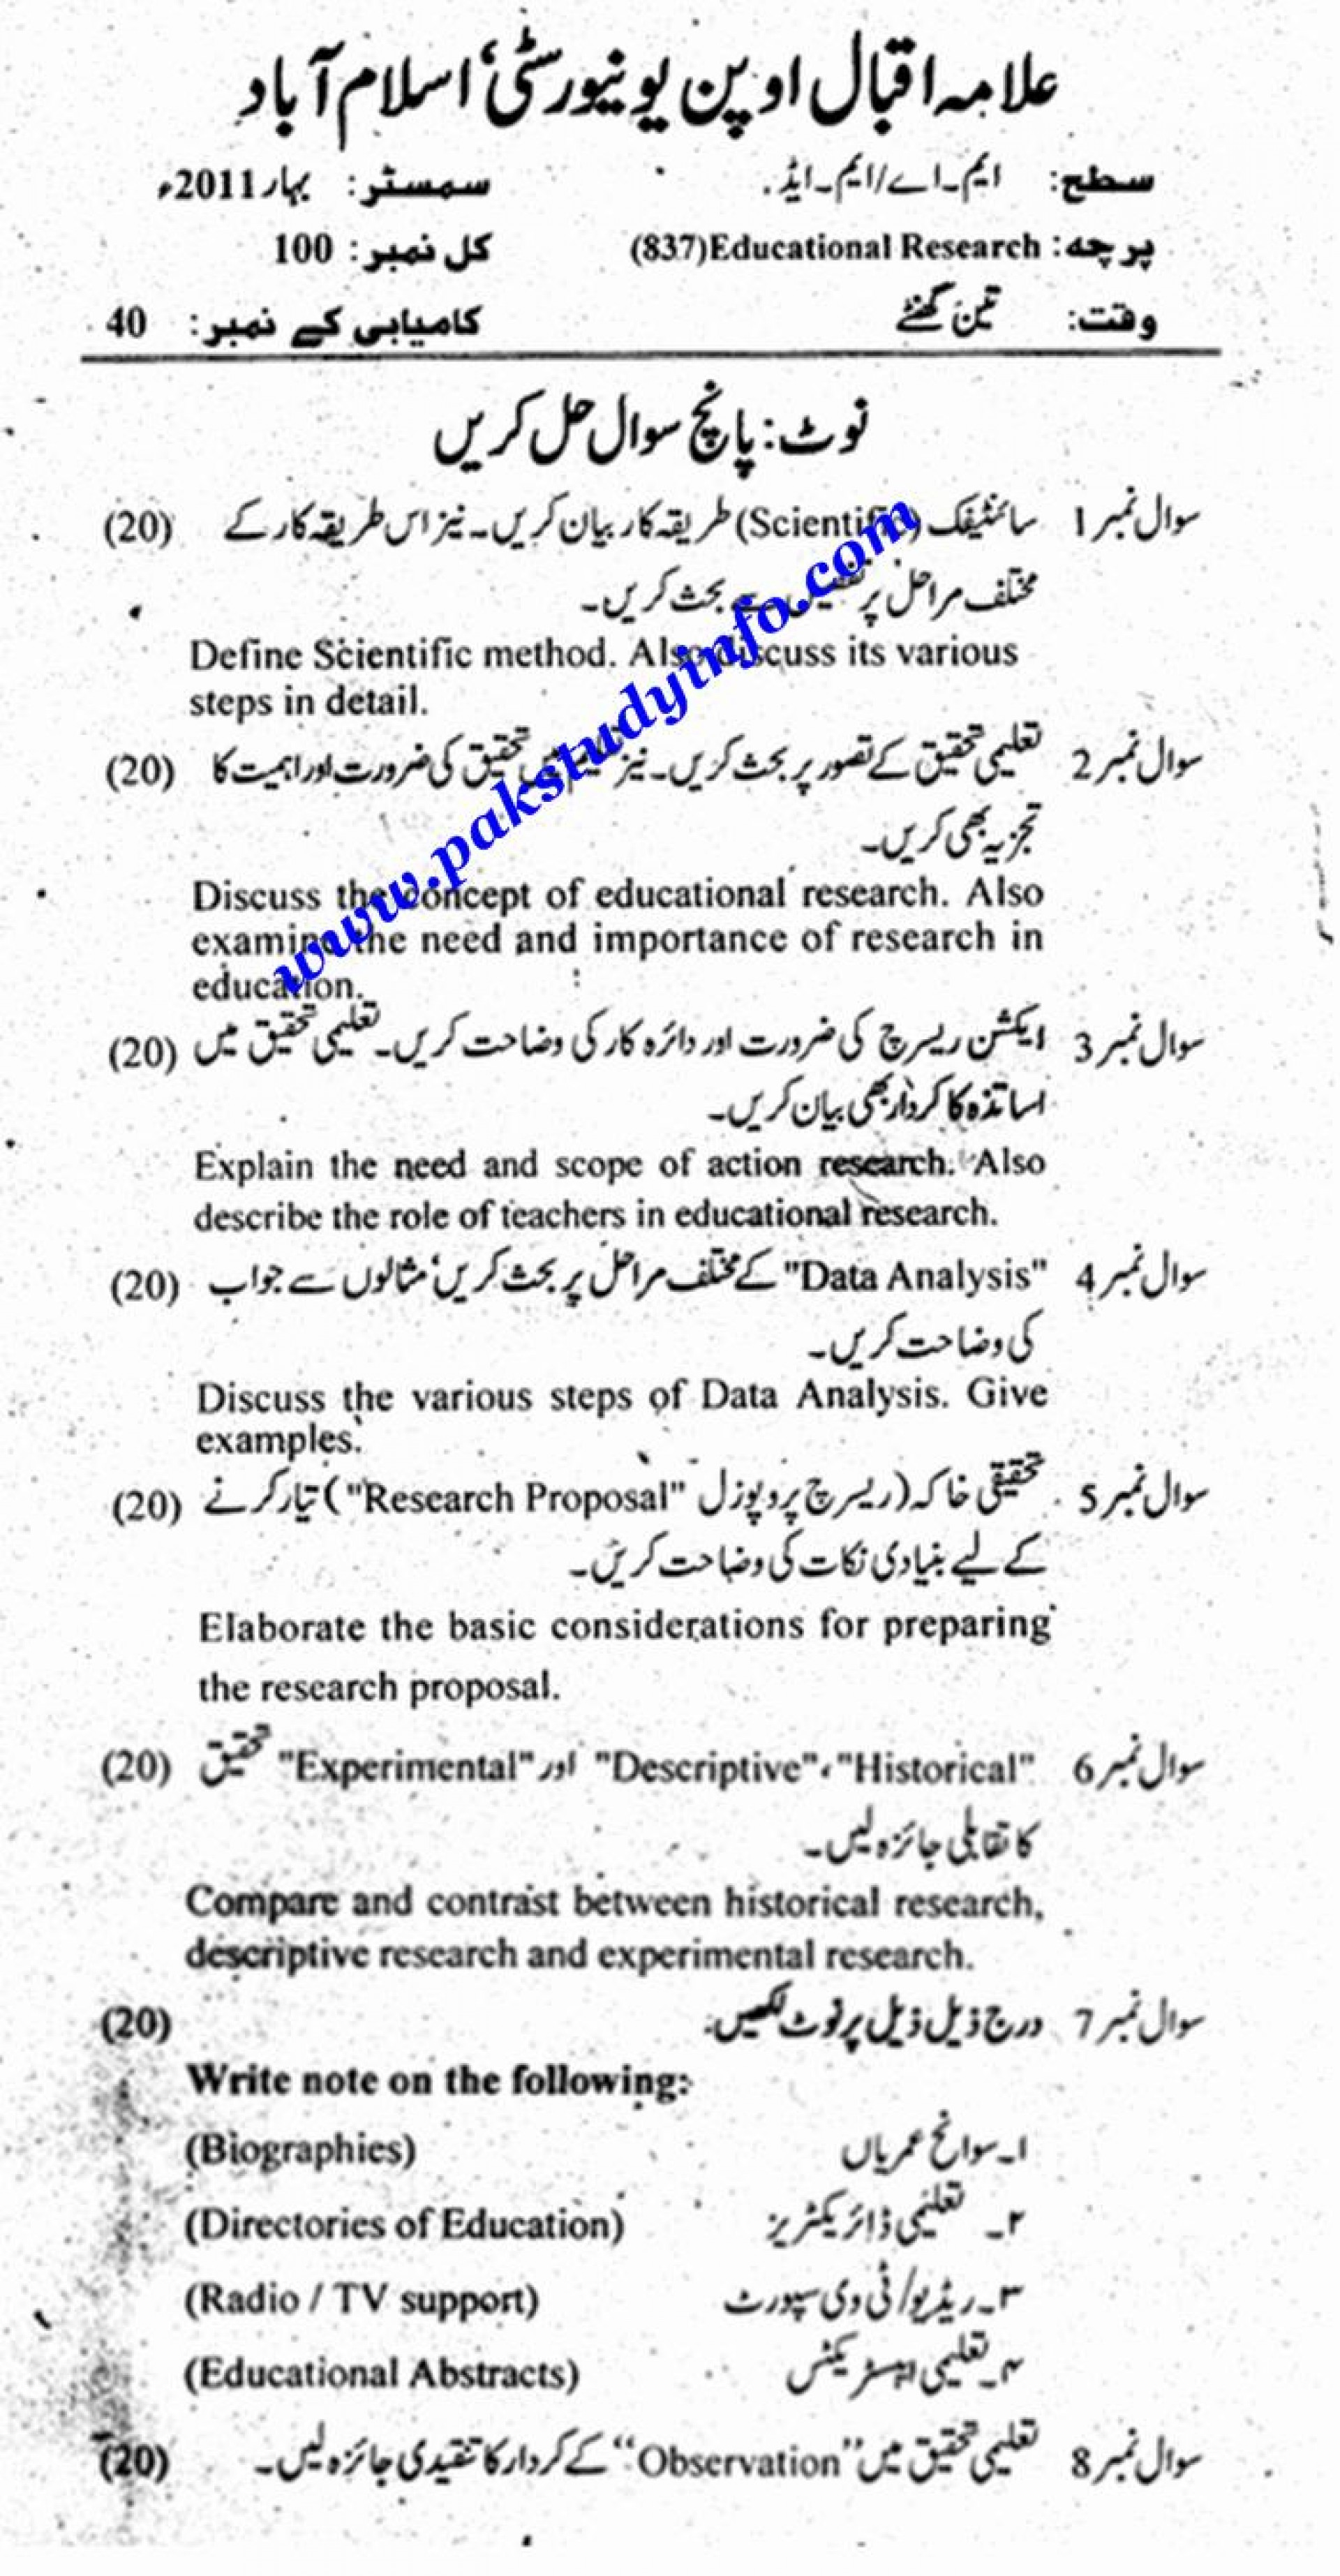 018 S2011 Jpg Education Researchs Beautiful Research Papers Special Free On Higher Loan 1920